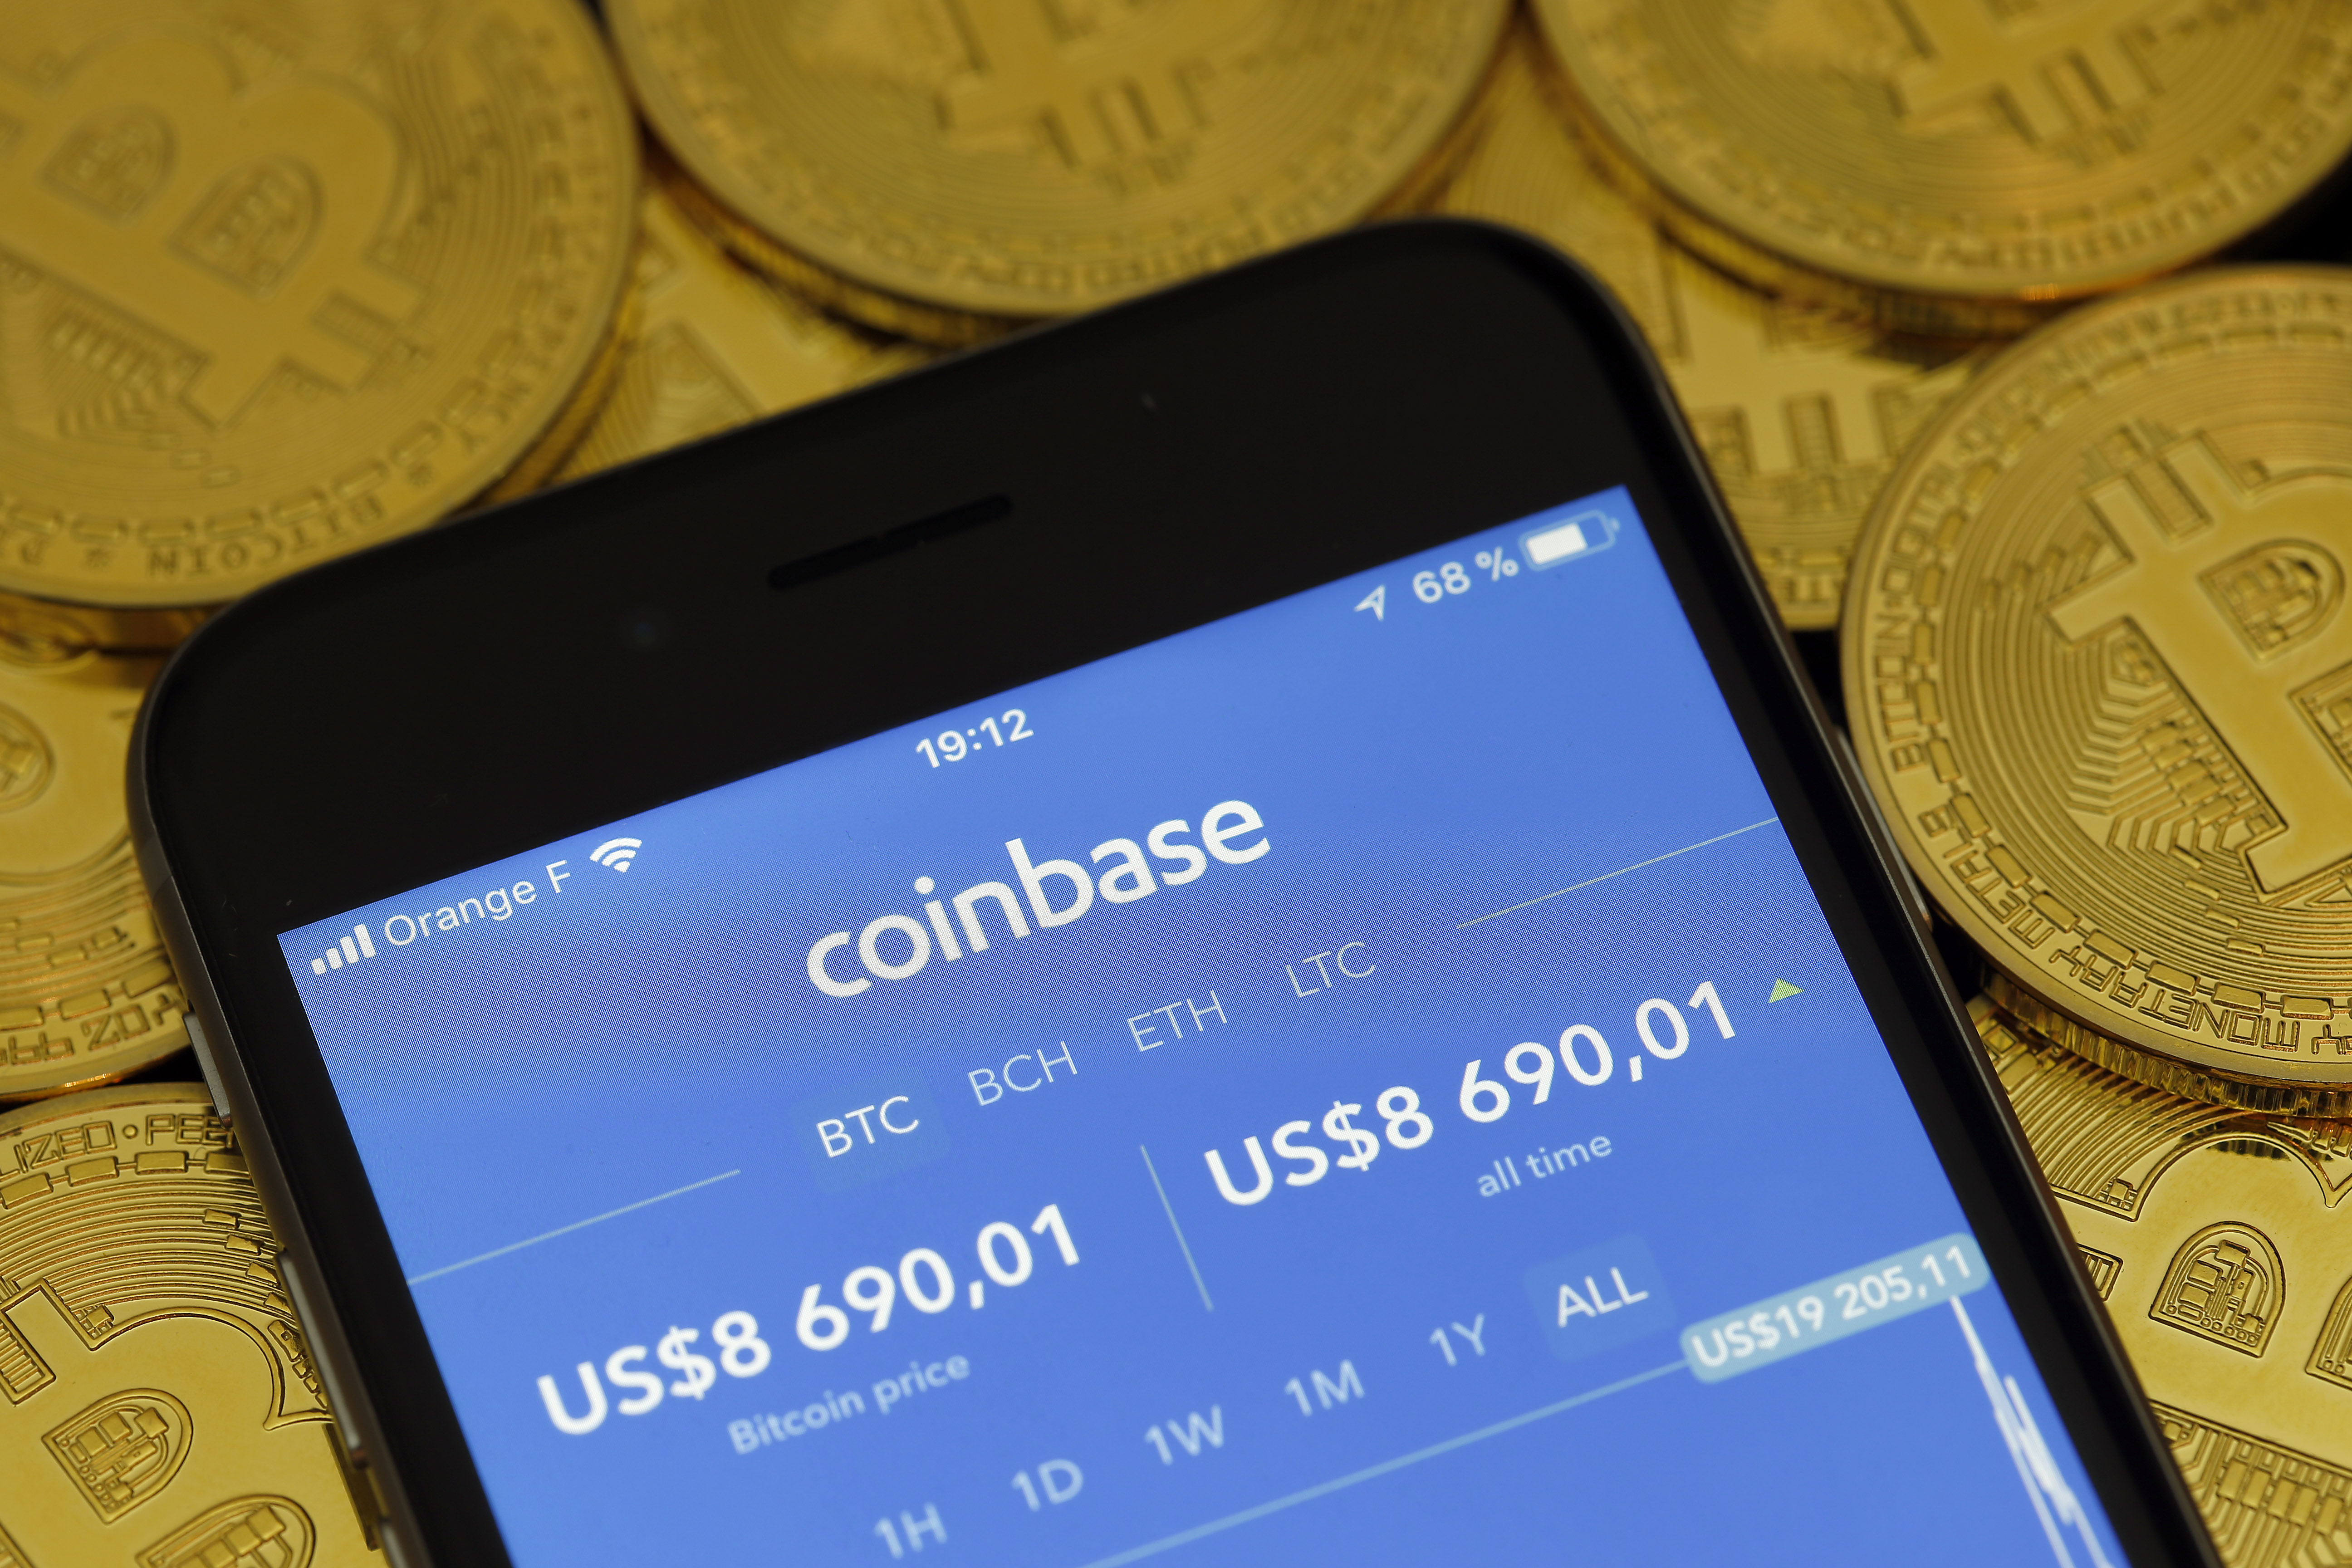 Coinbase lets you convert your tokens into gift cards